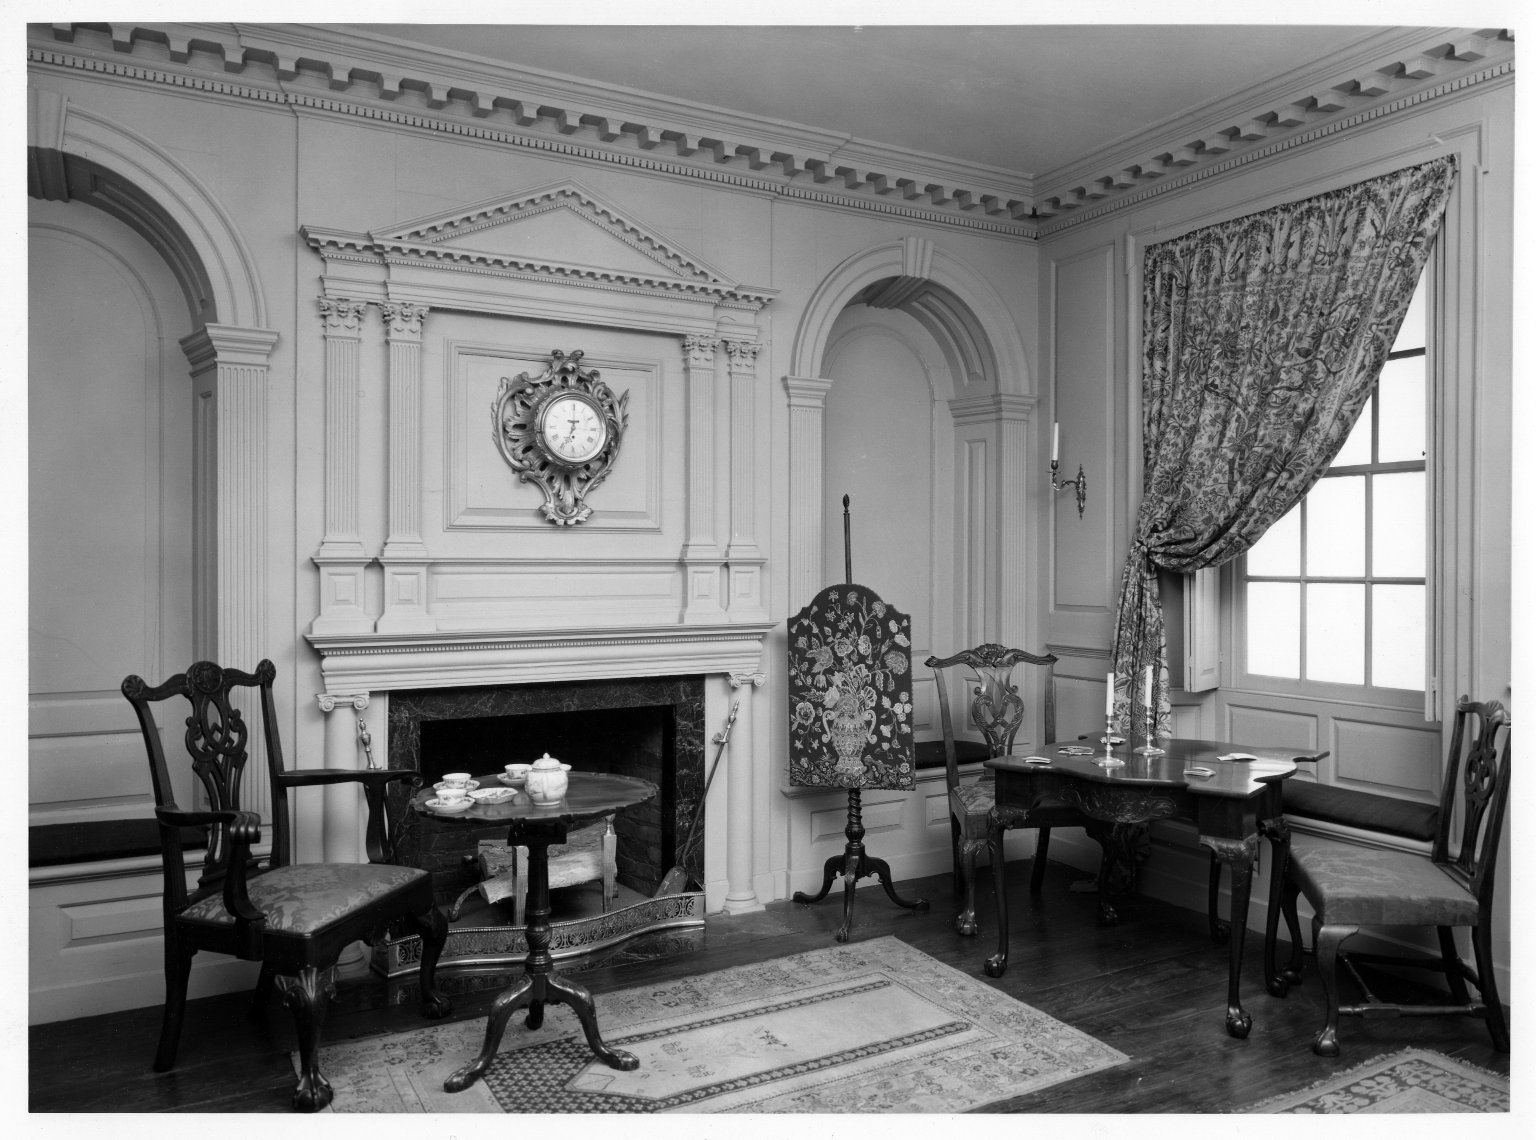 Brooklyn Museum: The North East Parlor of Joseph Russell House